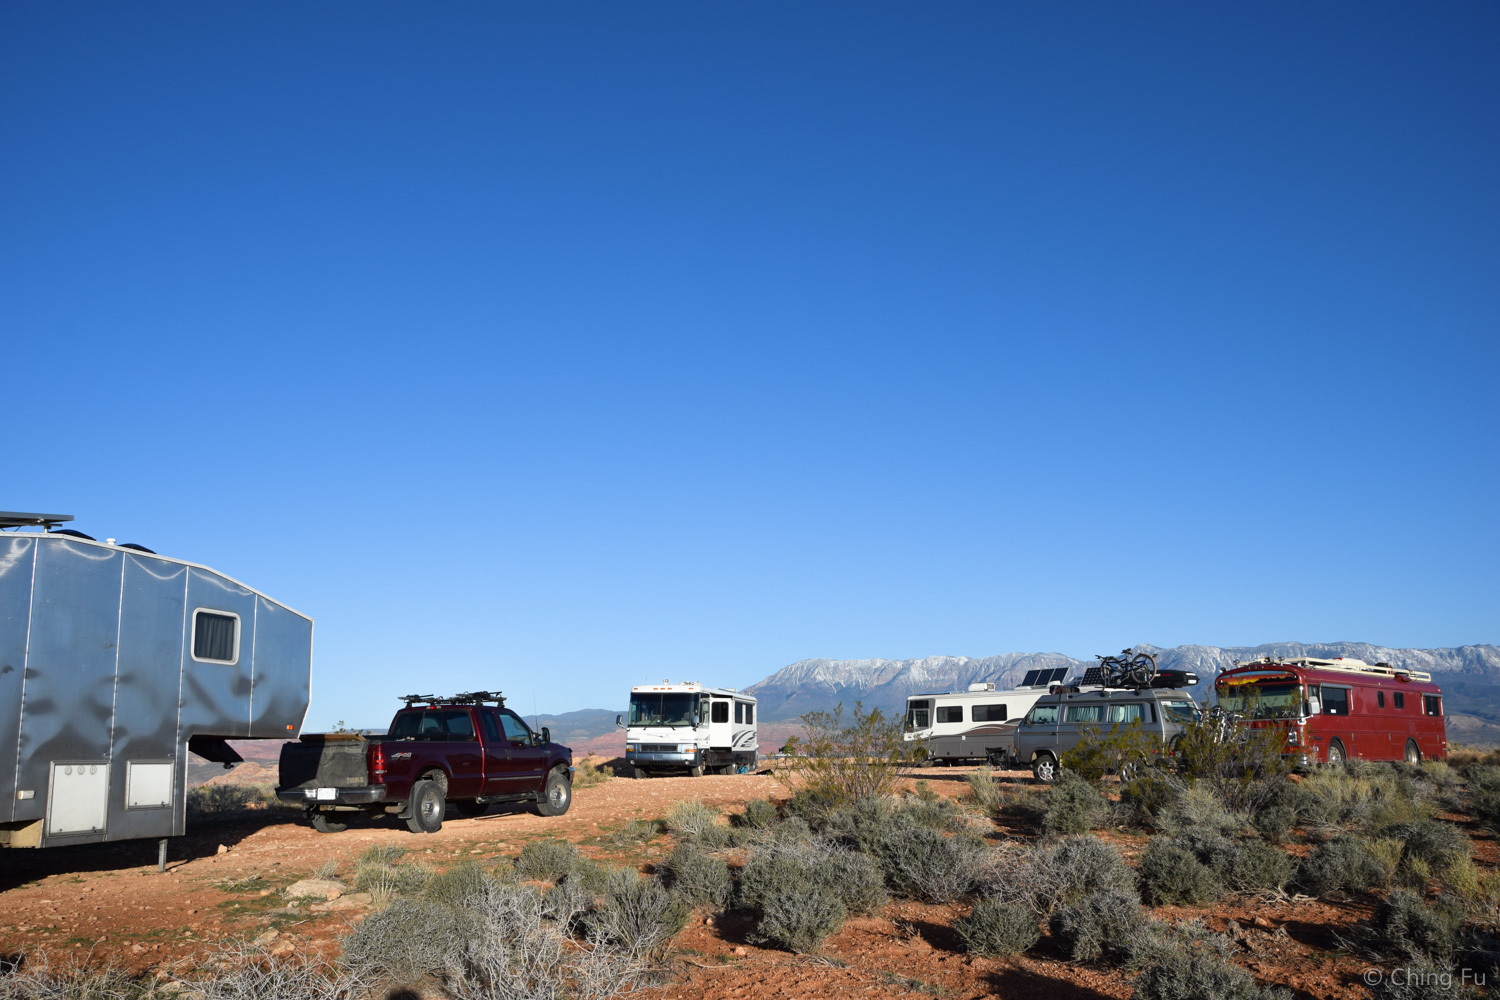 Boondocking with Road It Up, Girouette Mobile, and the V Family.